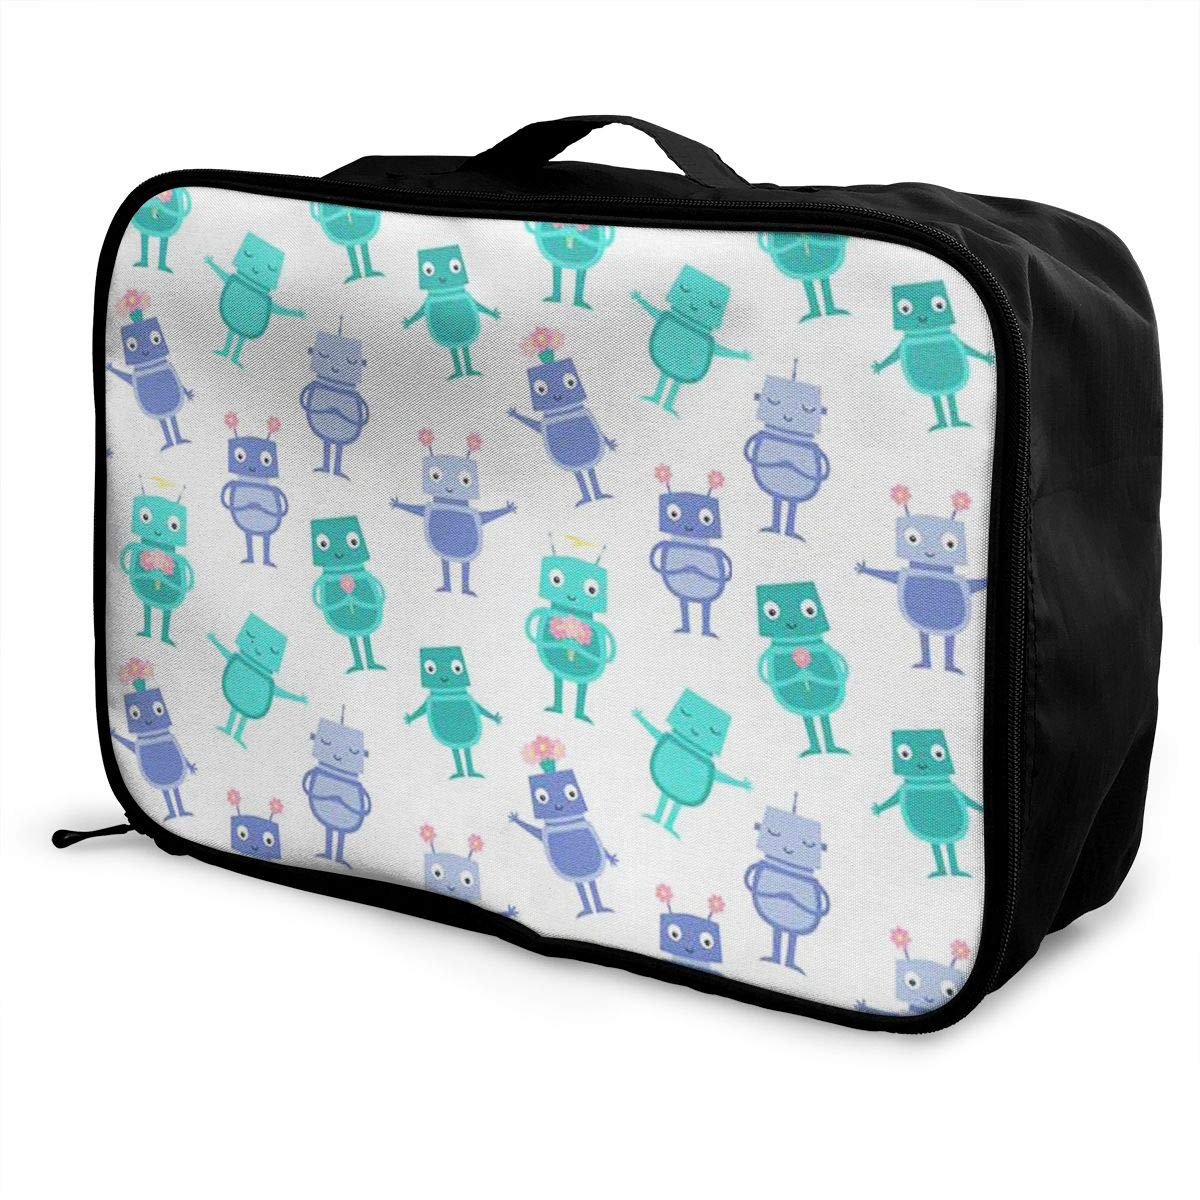 Portable Luggage Duffel Bag Starry Sky Travel Bags Carry-on In Trolley Handle